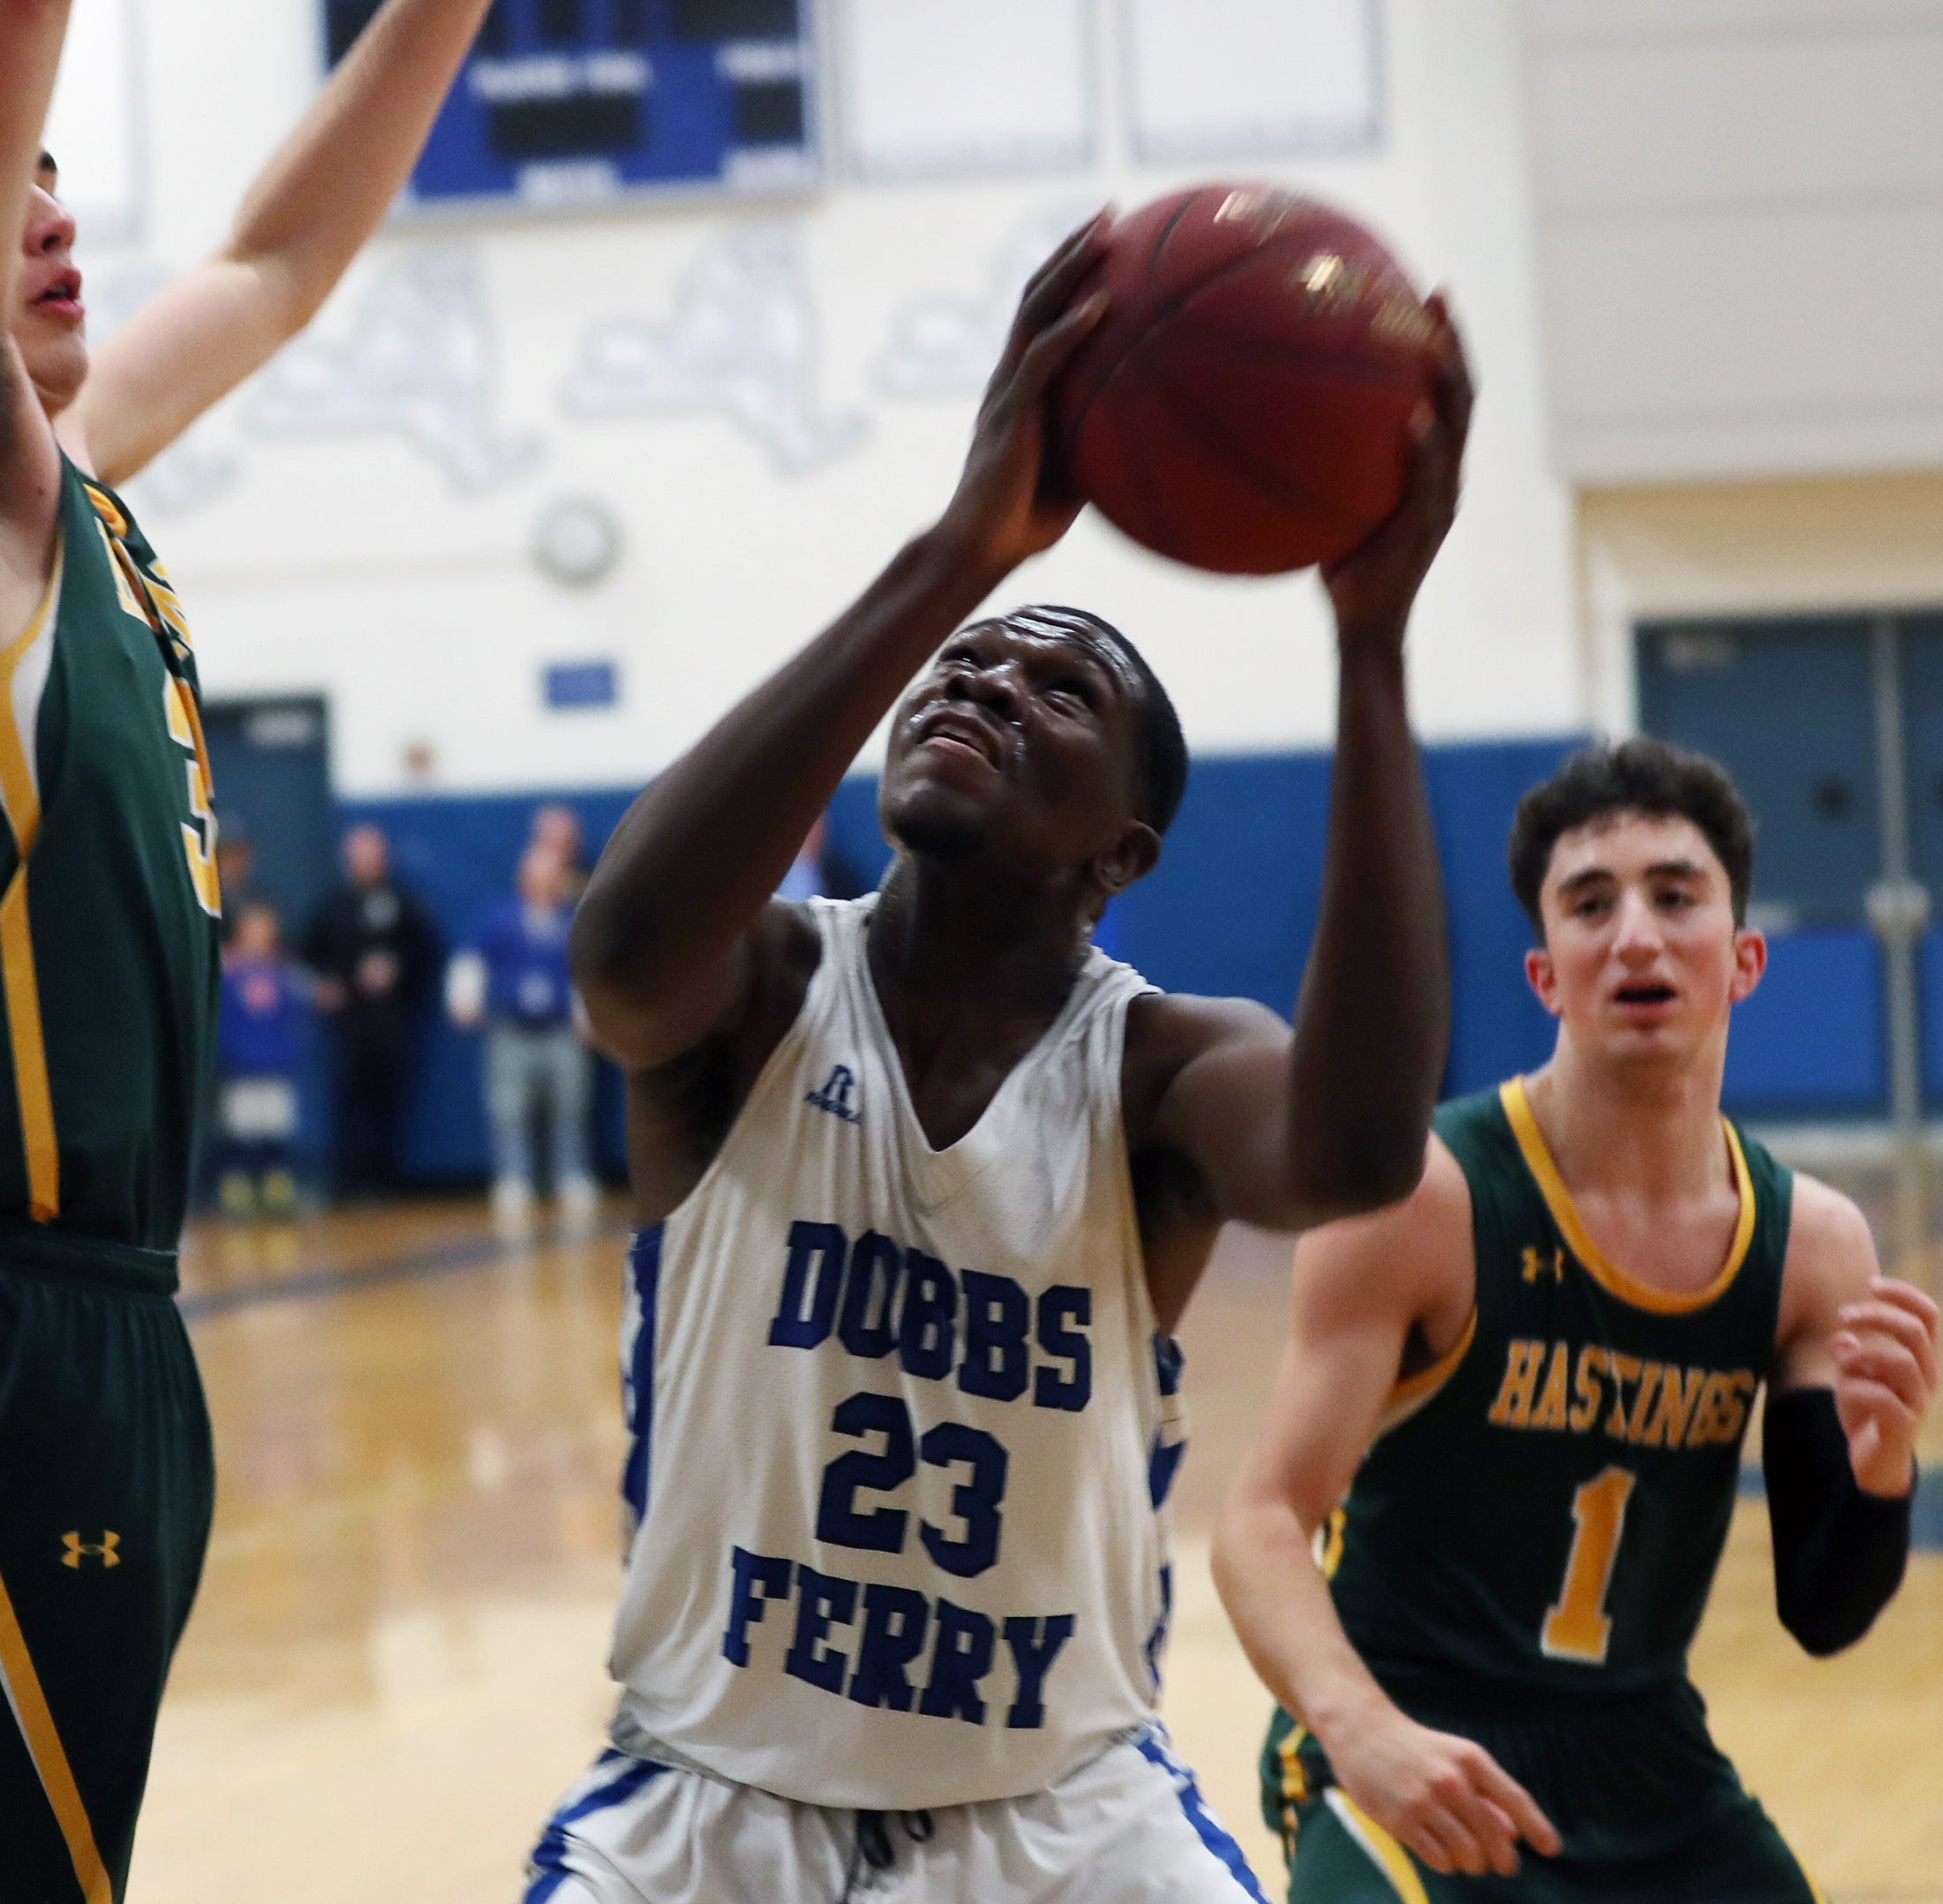 Boys basketball: Dobbs Ferry finally matches Hastings to return to County Center